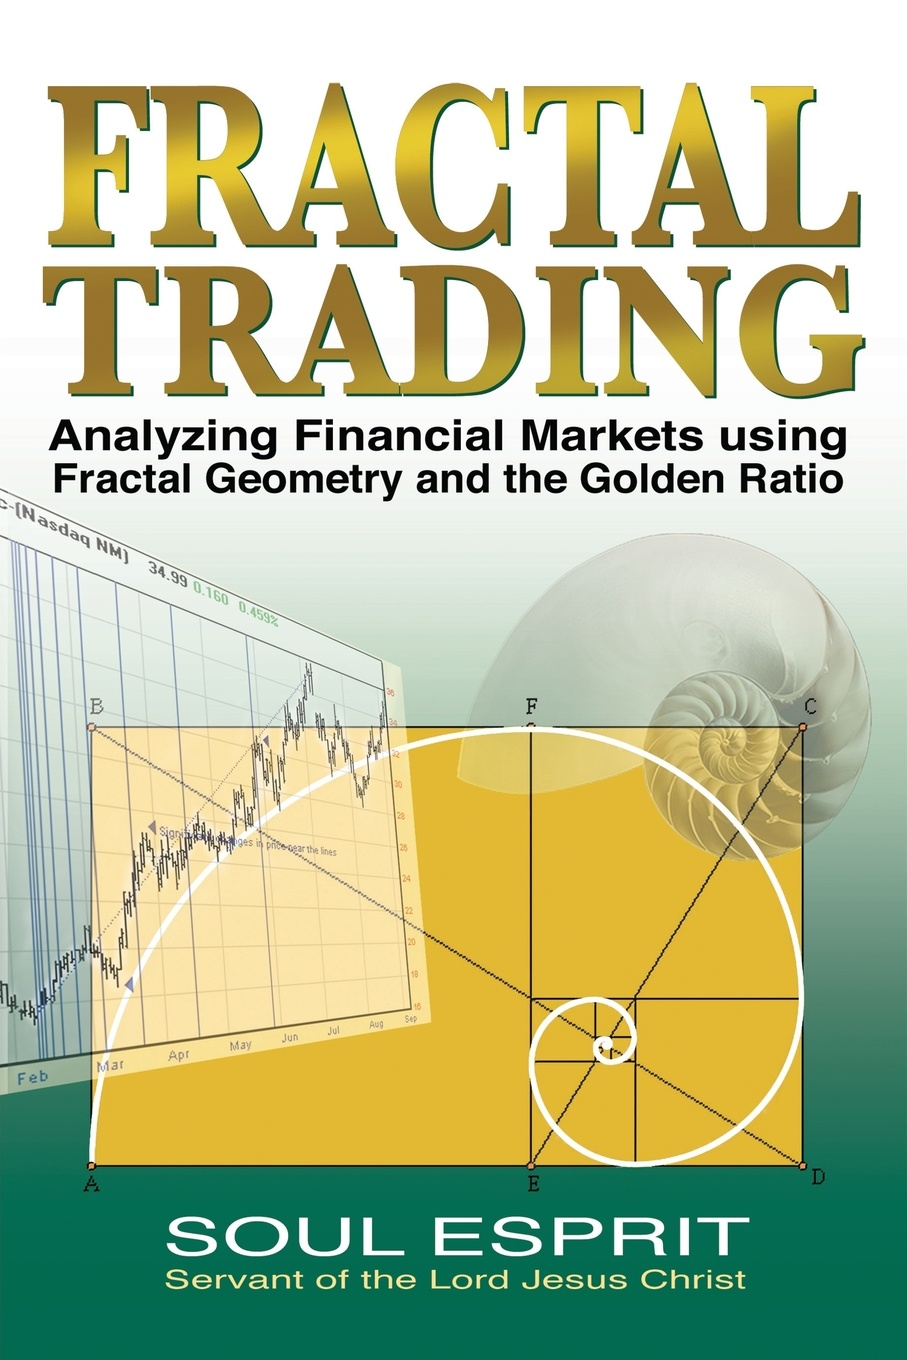 Soul Esprit Fractal Trading. Analyzing Financial Markets using Fractal Geometry and the Golden Ratio fabio oreste quantum trading using principles of modern physics to forecast the financial markets